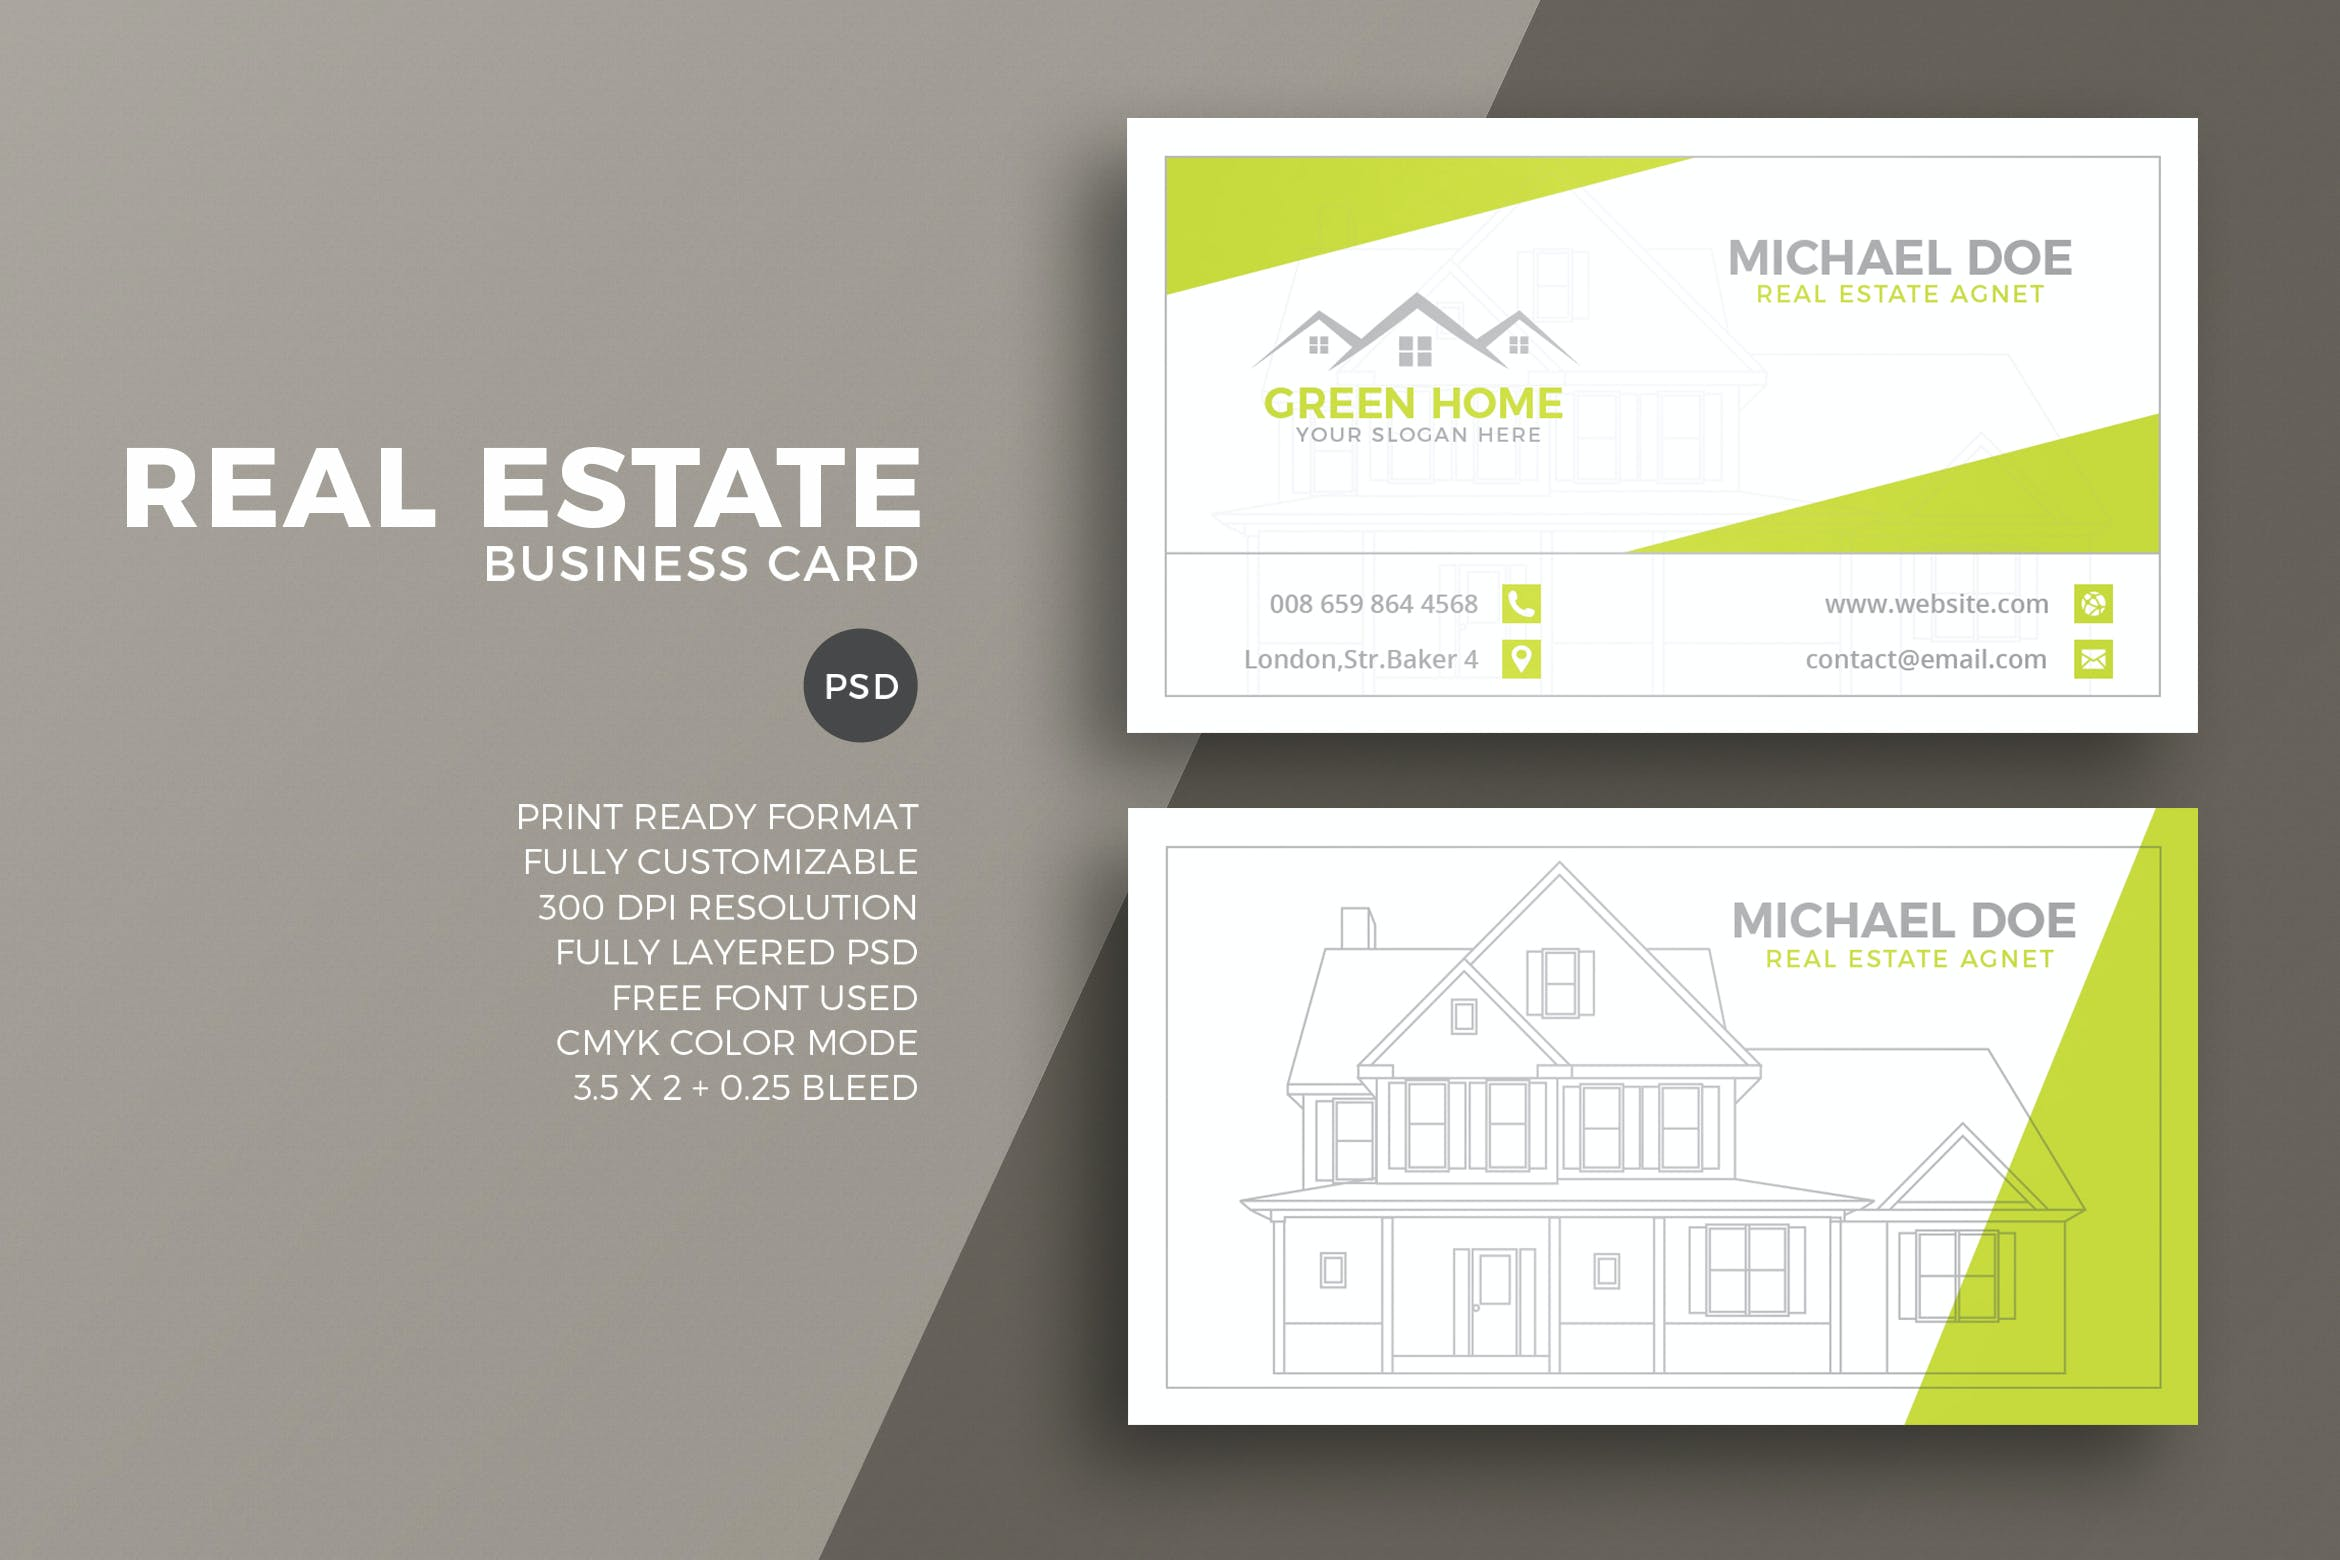 Real Estate Business Card Template By Eightonesixstudios On Envato Elements